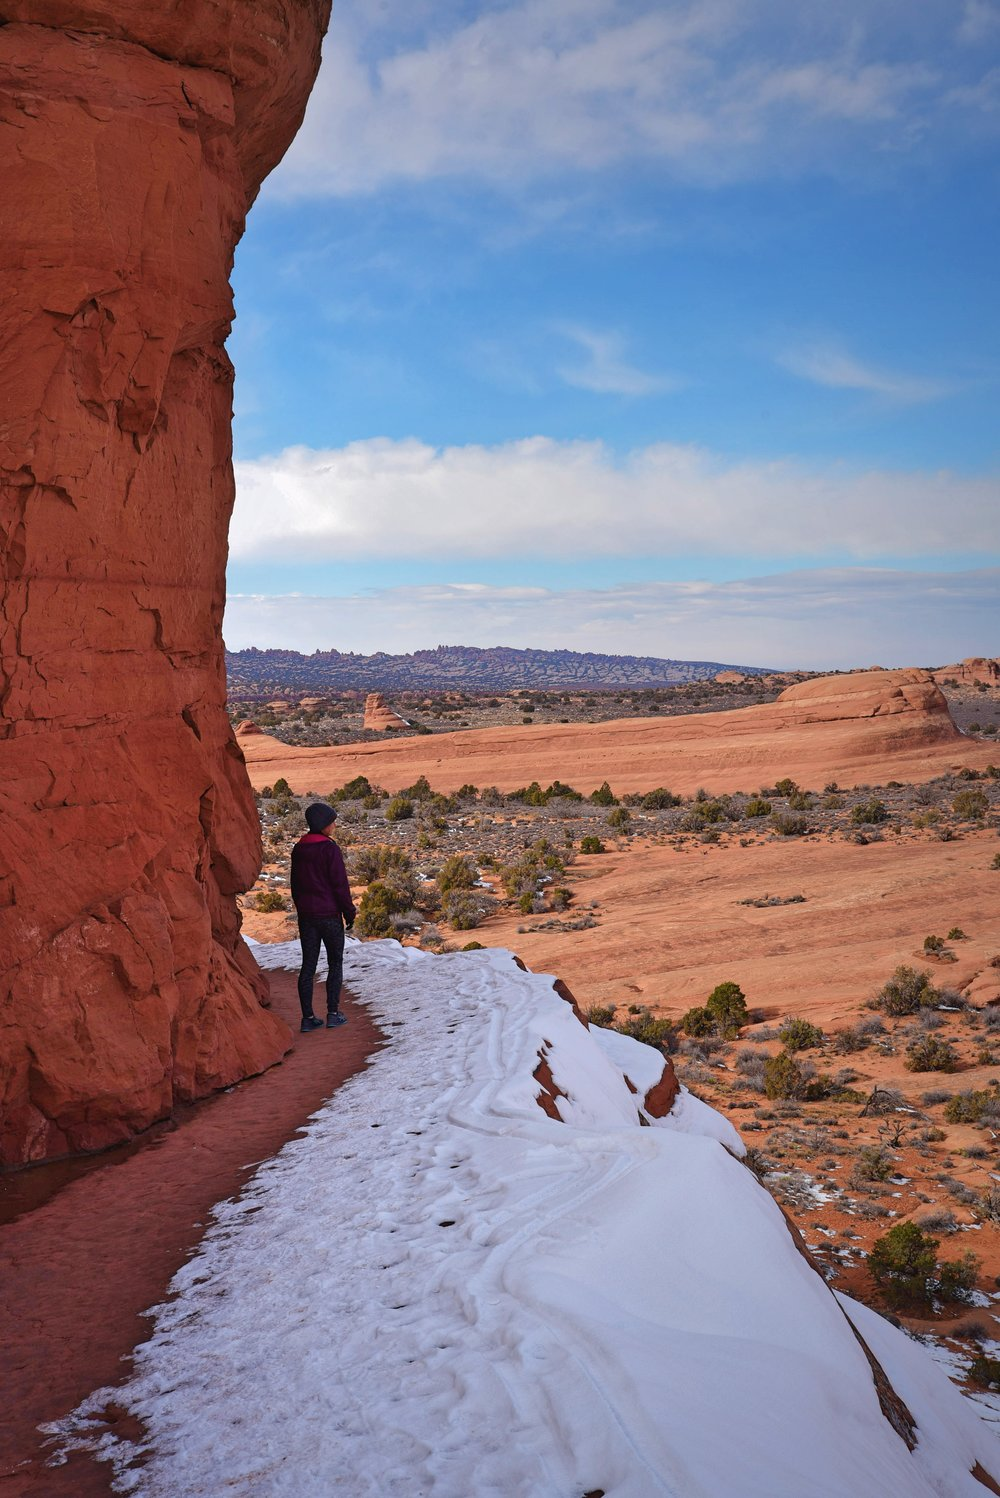 Fortunately the inside of this ledge was totally clear of ice when we were hiking.